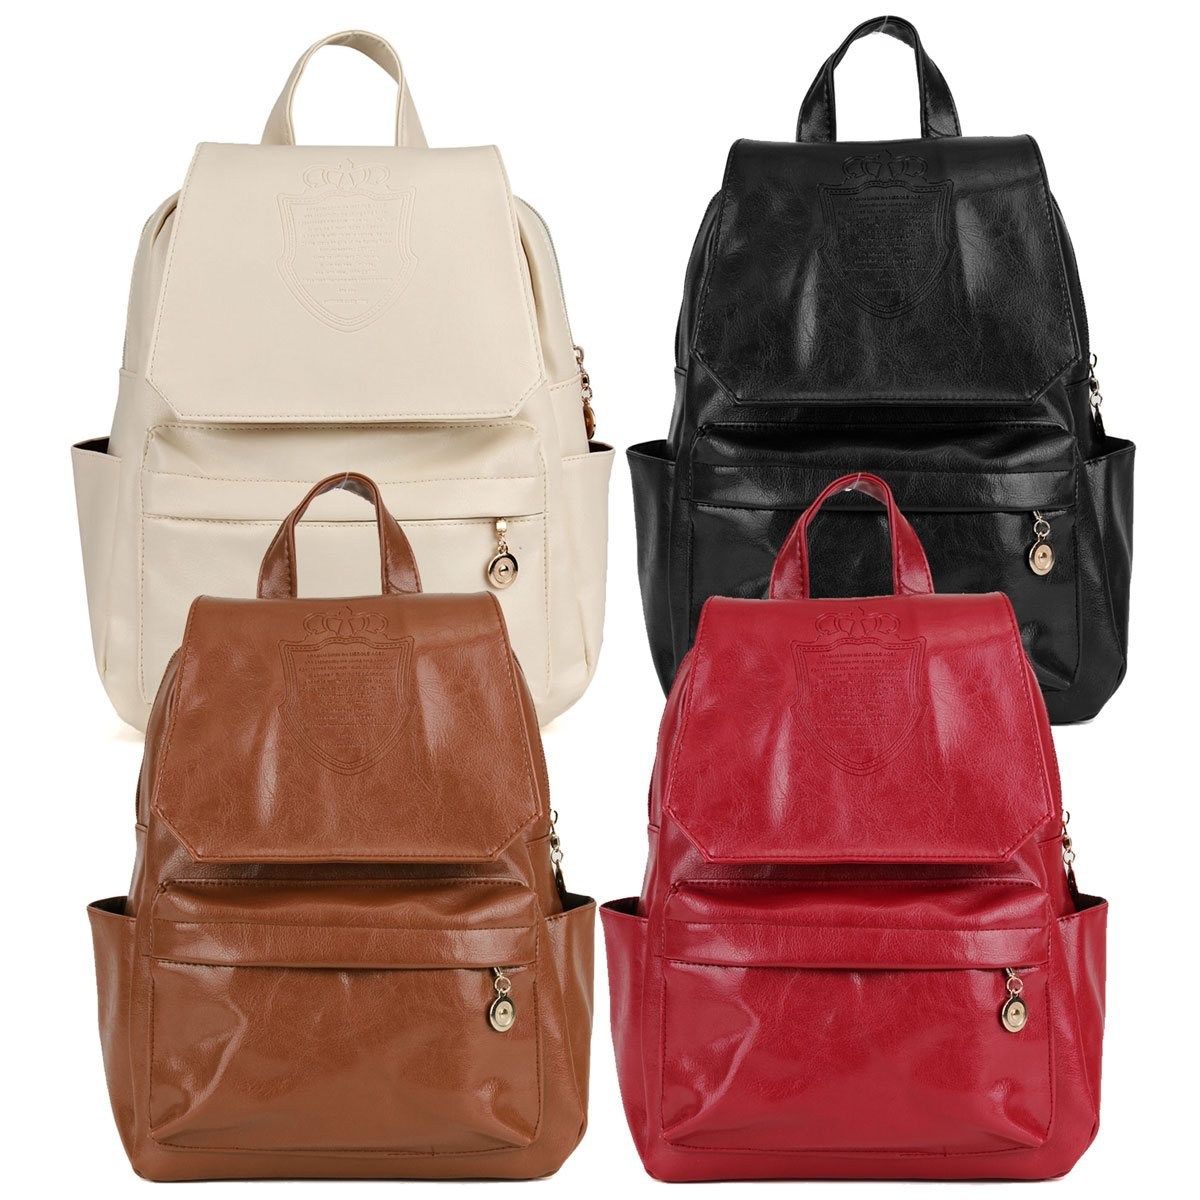 Find great deals on eBay for girls school backpacks. Shop with confidence.